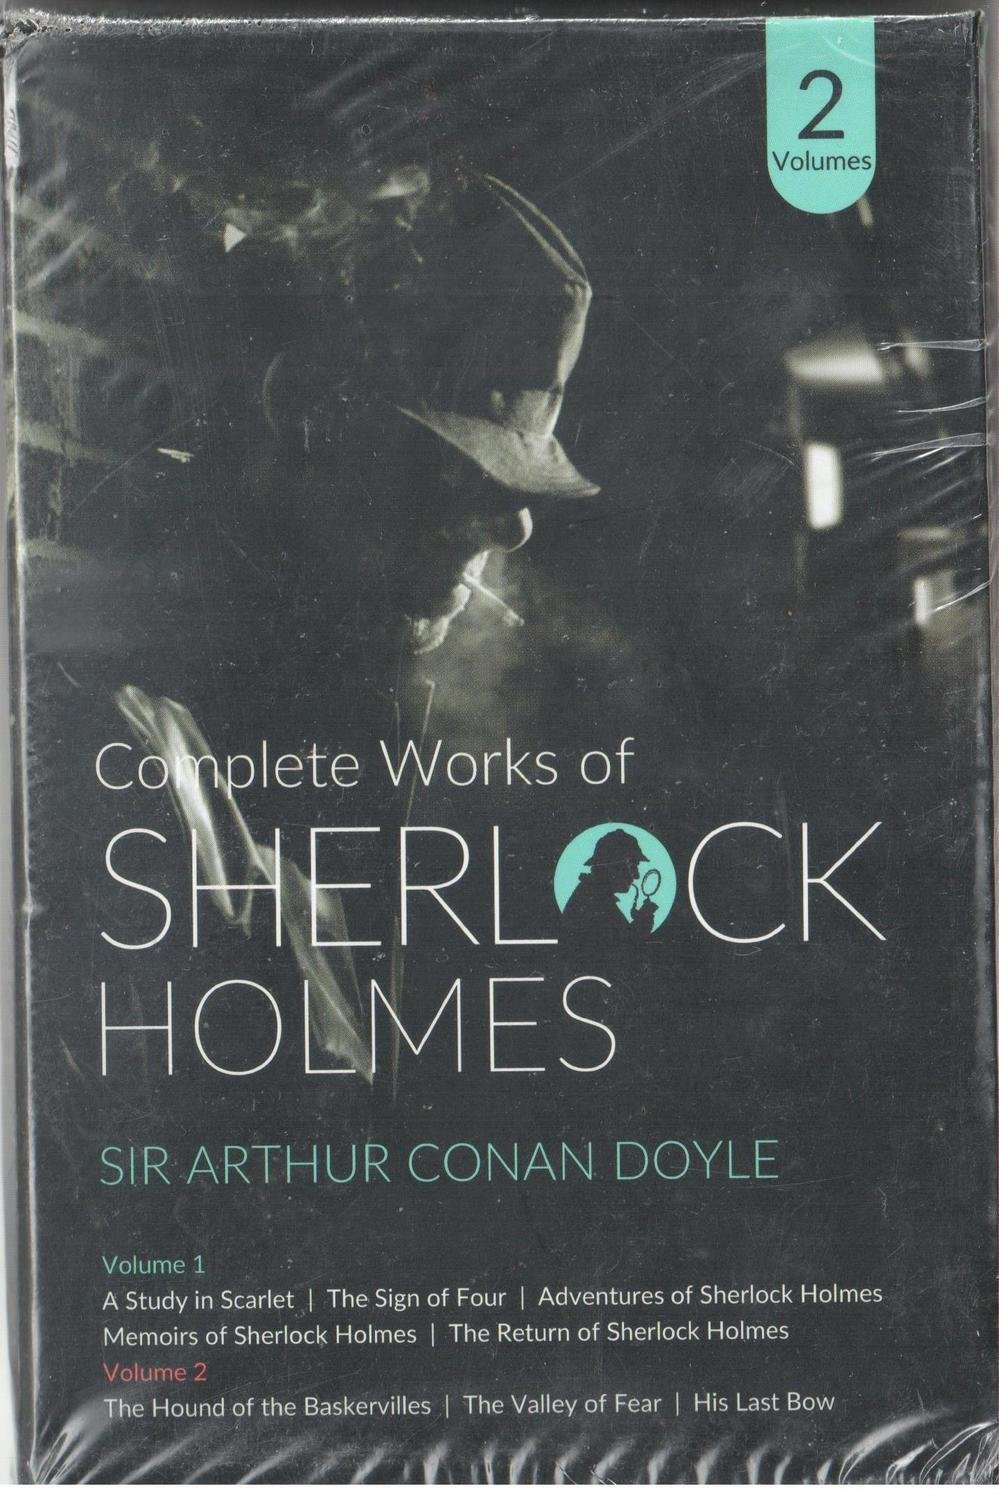 Complete Works of Sherlock Holmes - 2 Volumes by Sir Arthur Conan Doyle